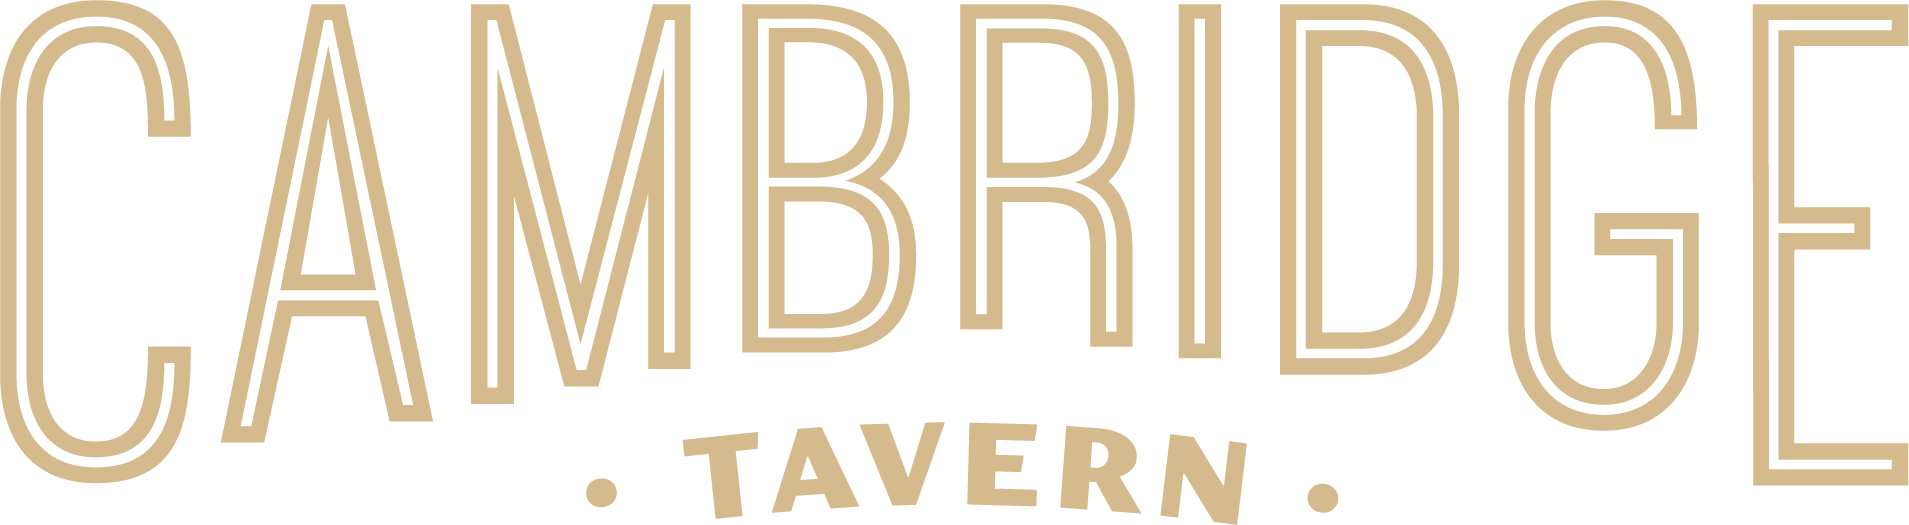 CambridgeTavern_Logo_Isoalted_Gold.png